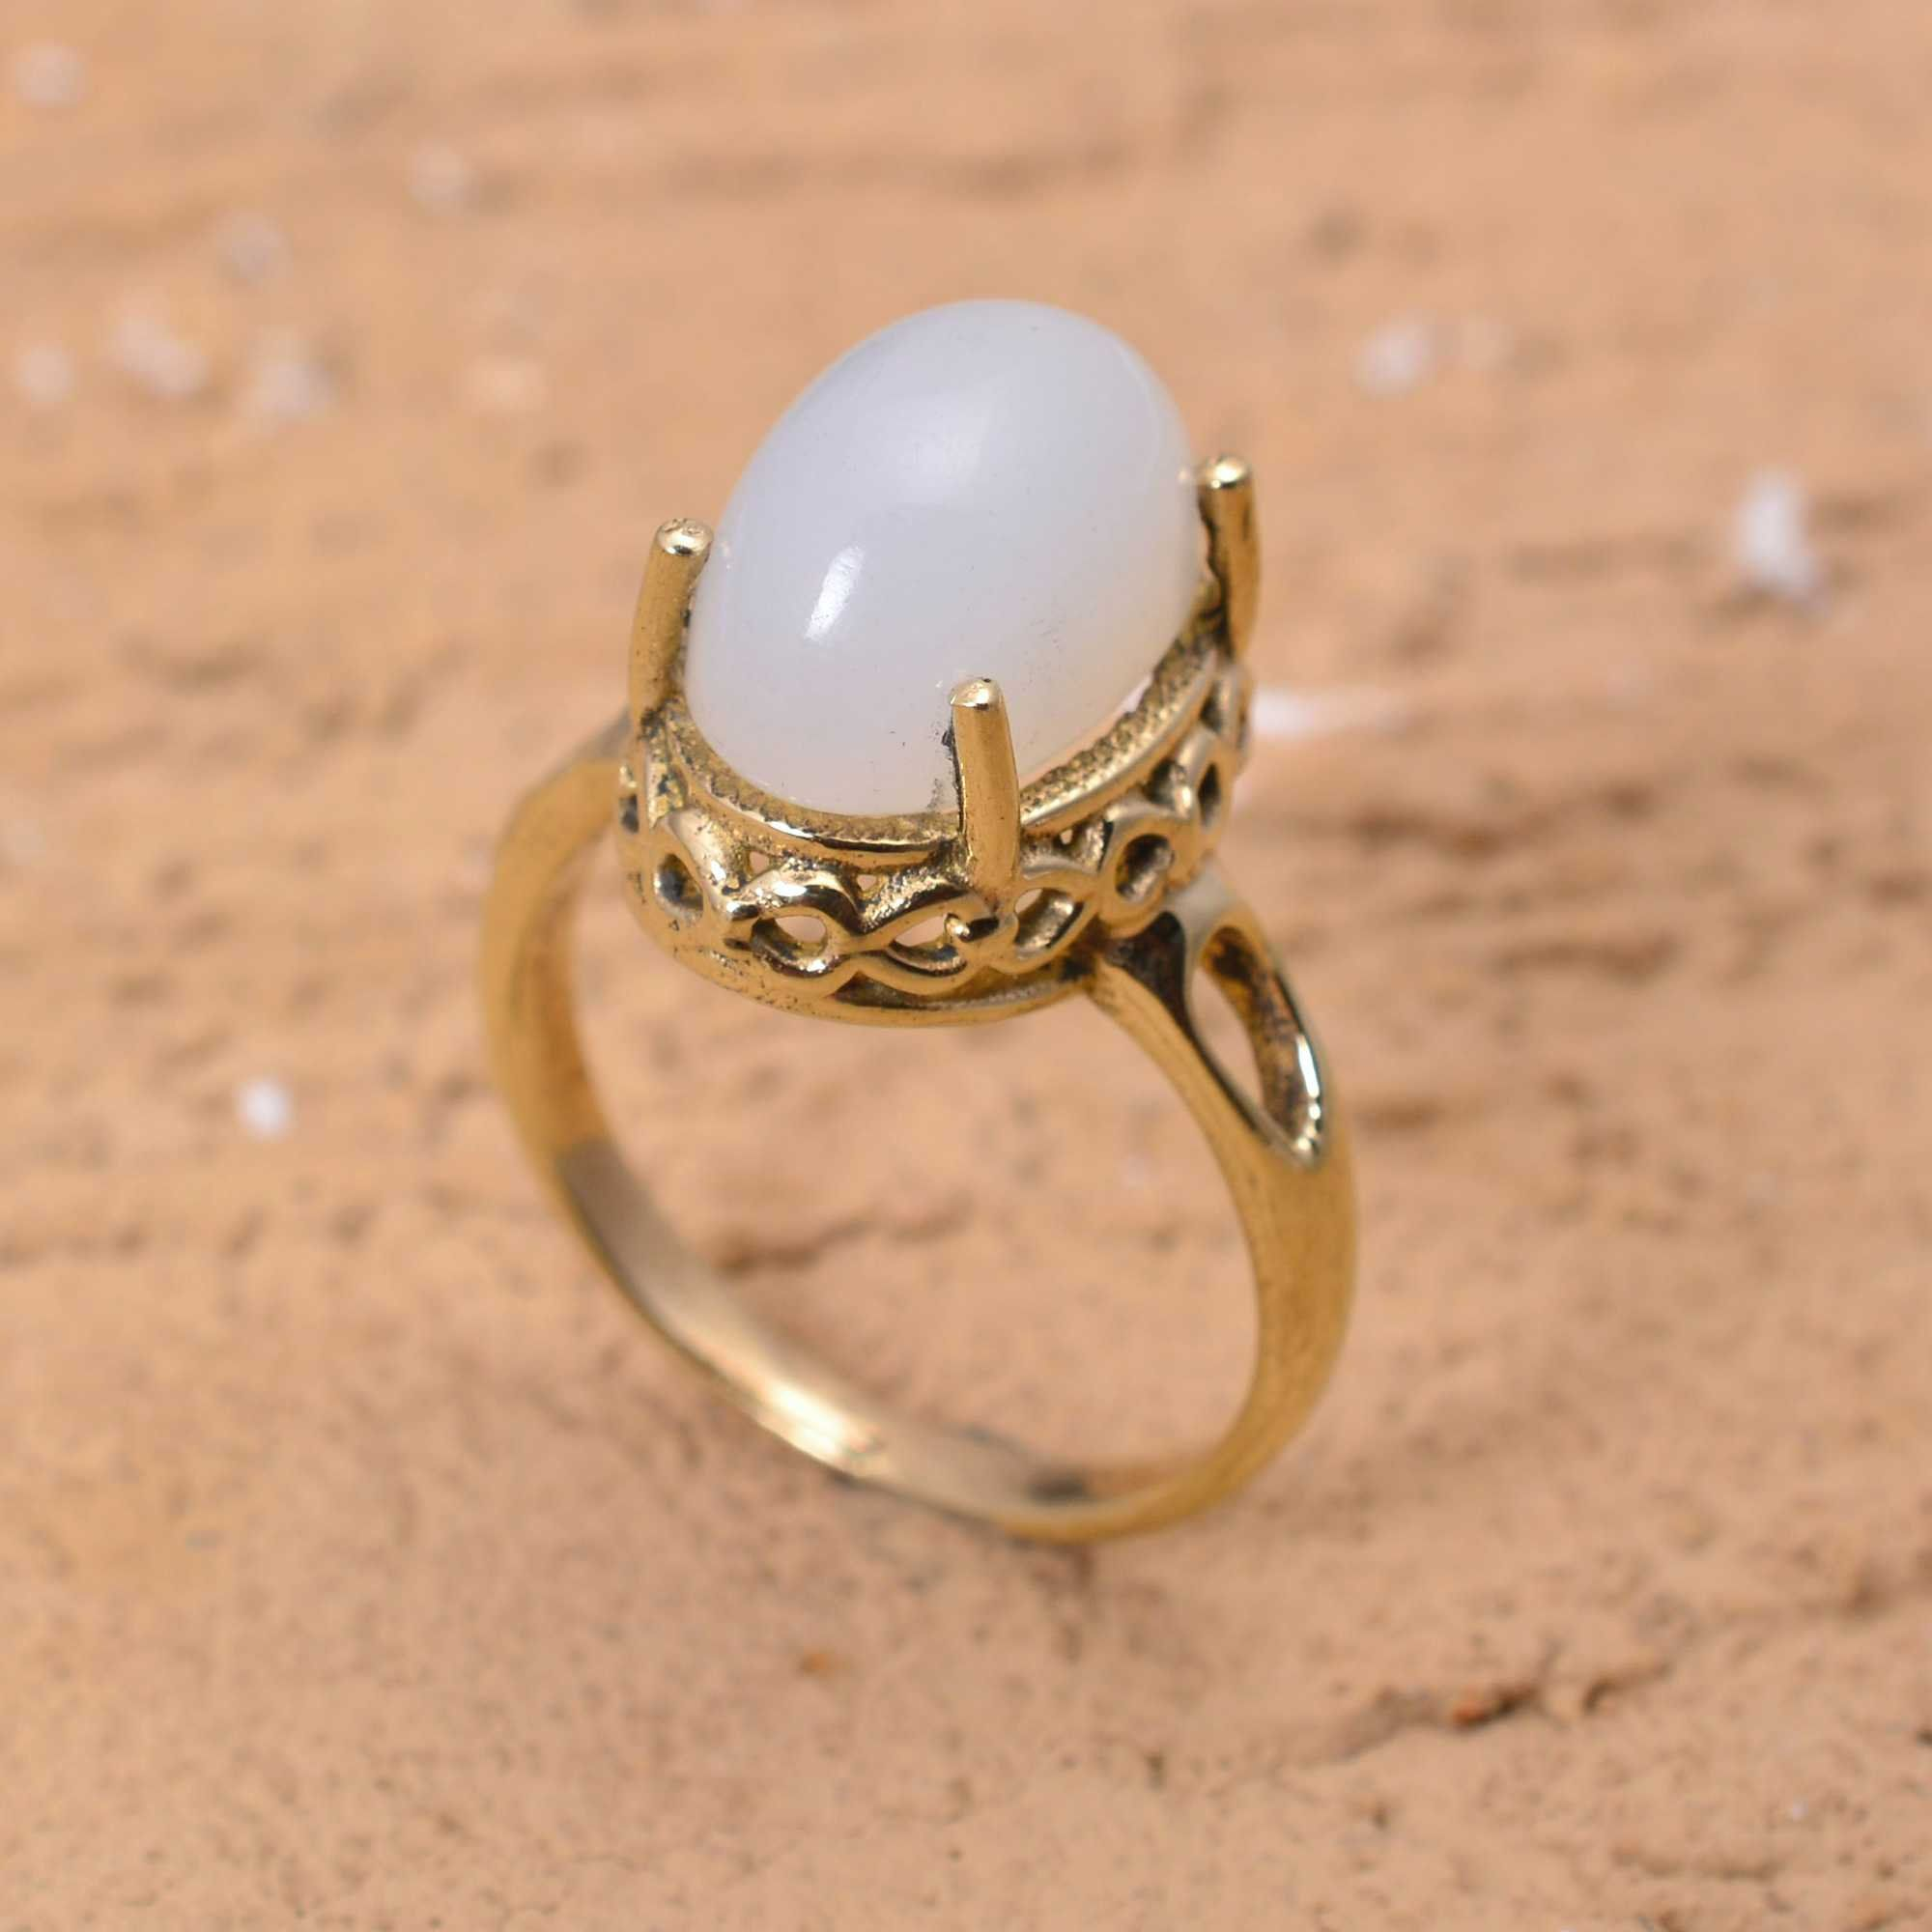 Natural Stone Ring,Handmade Ring,Brass Ring,Midi Ring,Boho Ring,Promise Ring,Personalized Ring,Gift Ring,Gift For Her